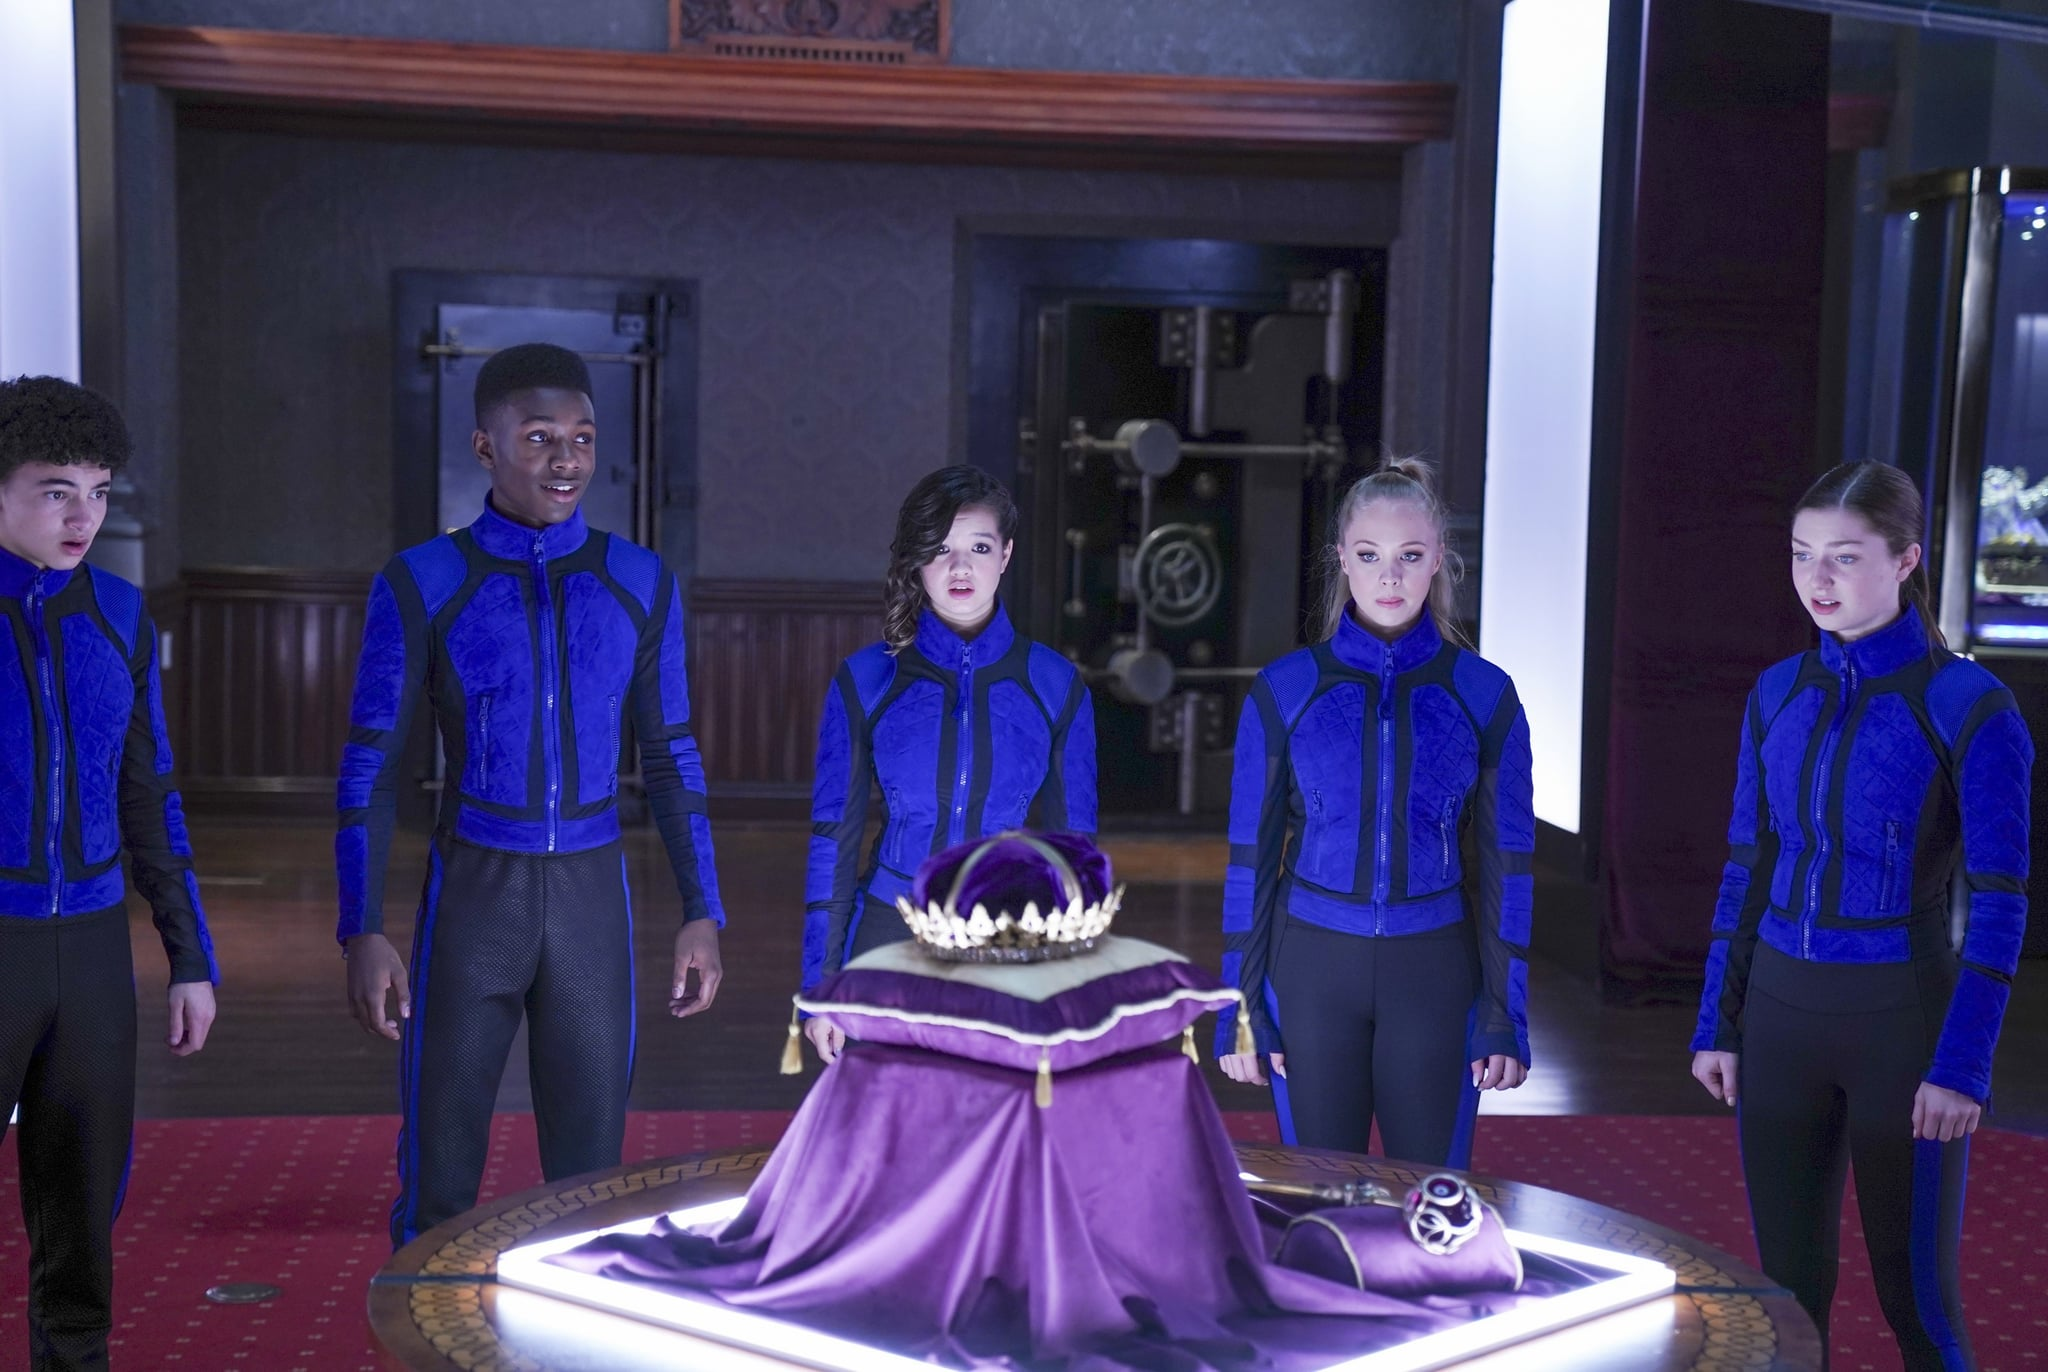 SECRET SOCIETY OF SECOND BORN ROYALS, from left: Faly Rakotohavana, Niles Fitch, Peyton Elizabeth Lee, Olivia Deeble, Isabella Blake-Thomas, 2020. ph: John Medland /  Disney+ / Courtesy Everett Collection